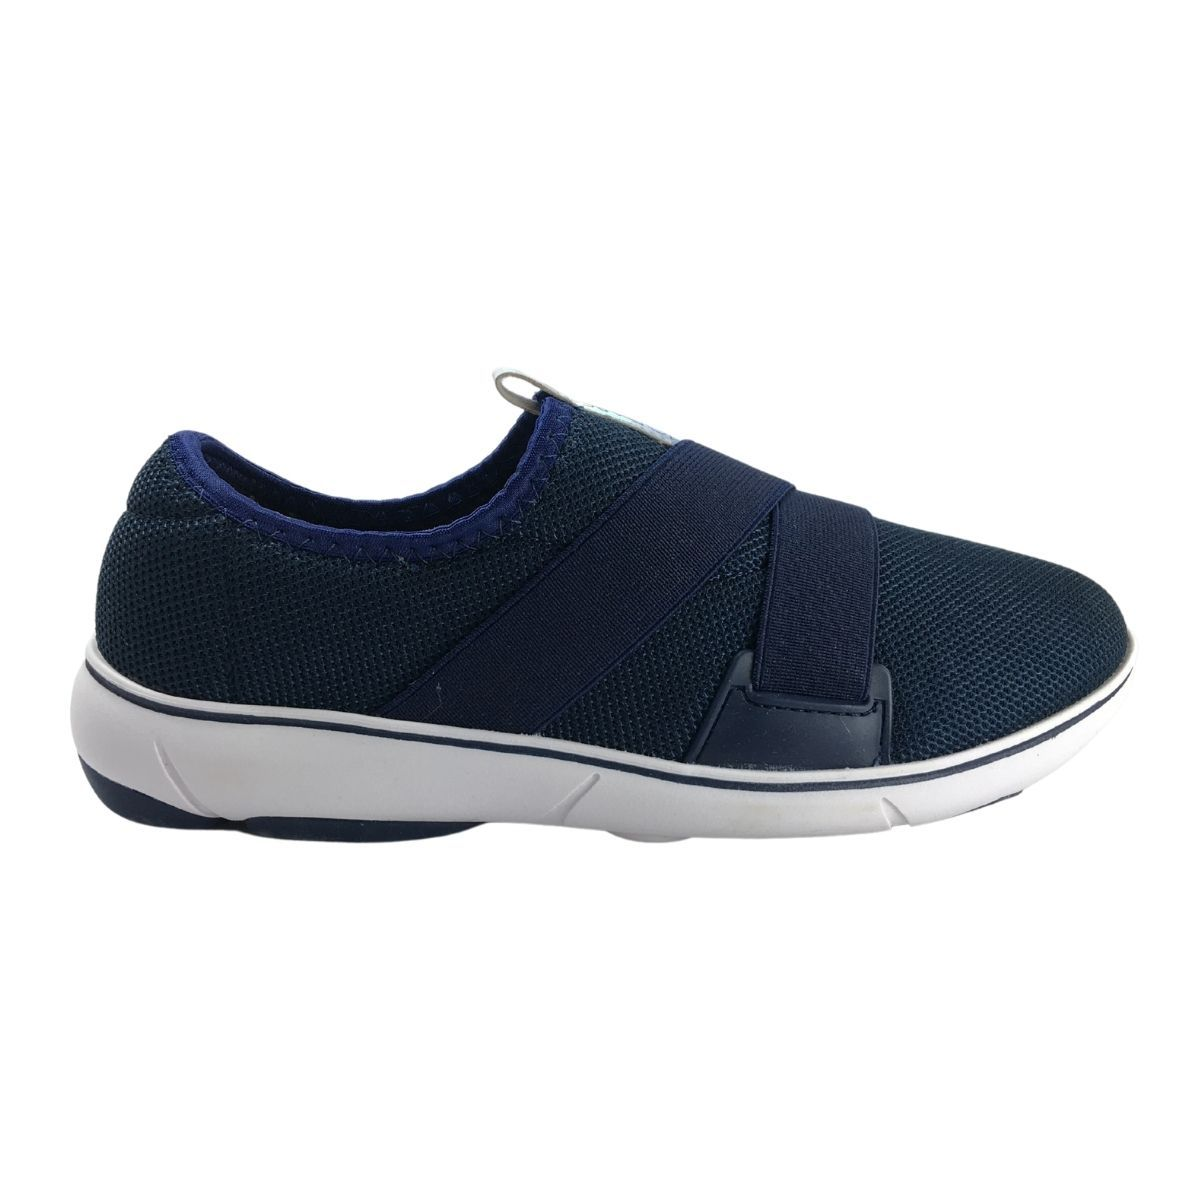 Tenis Casual Feminino Modare Slip On Ultraconfortavel